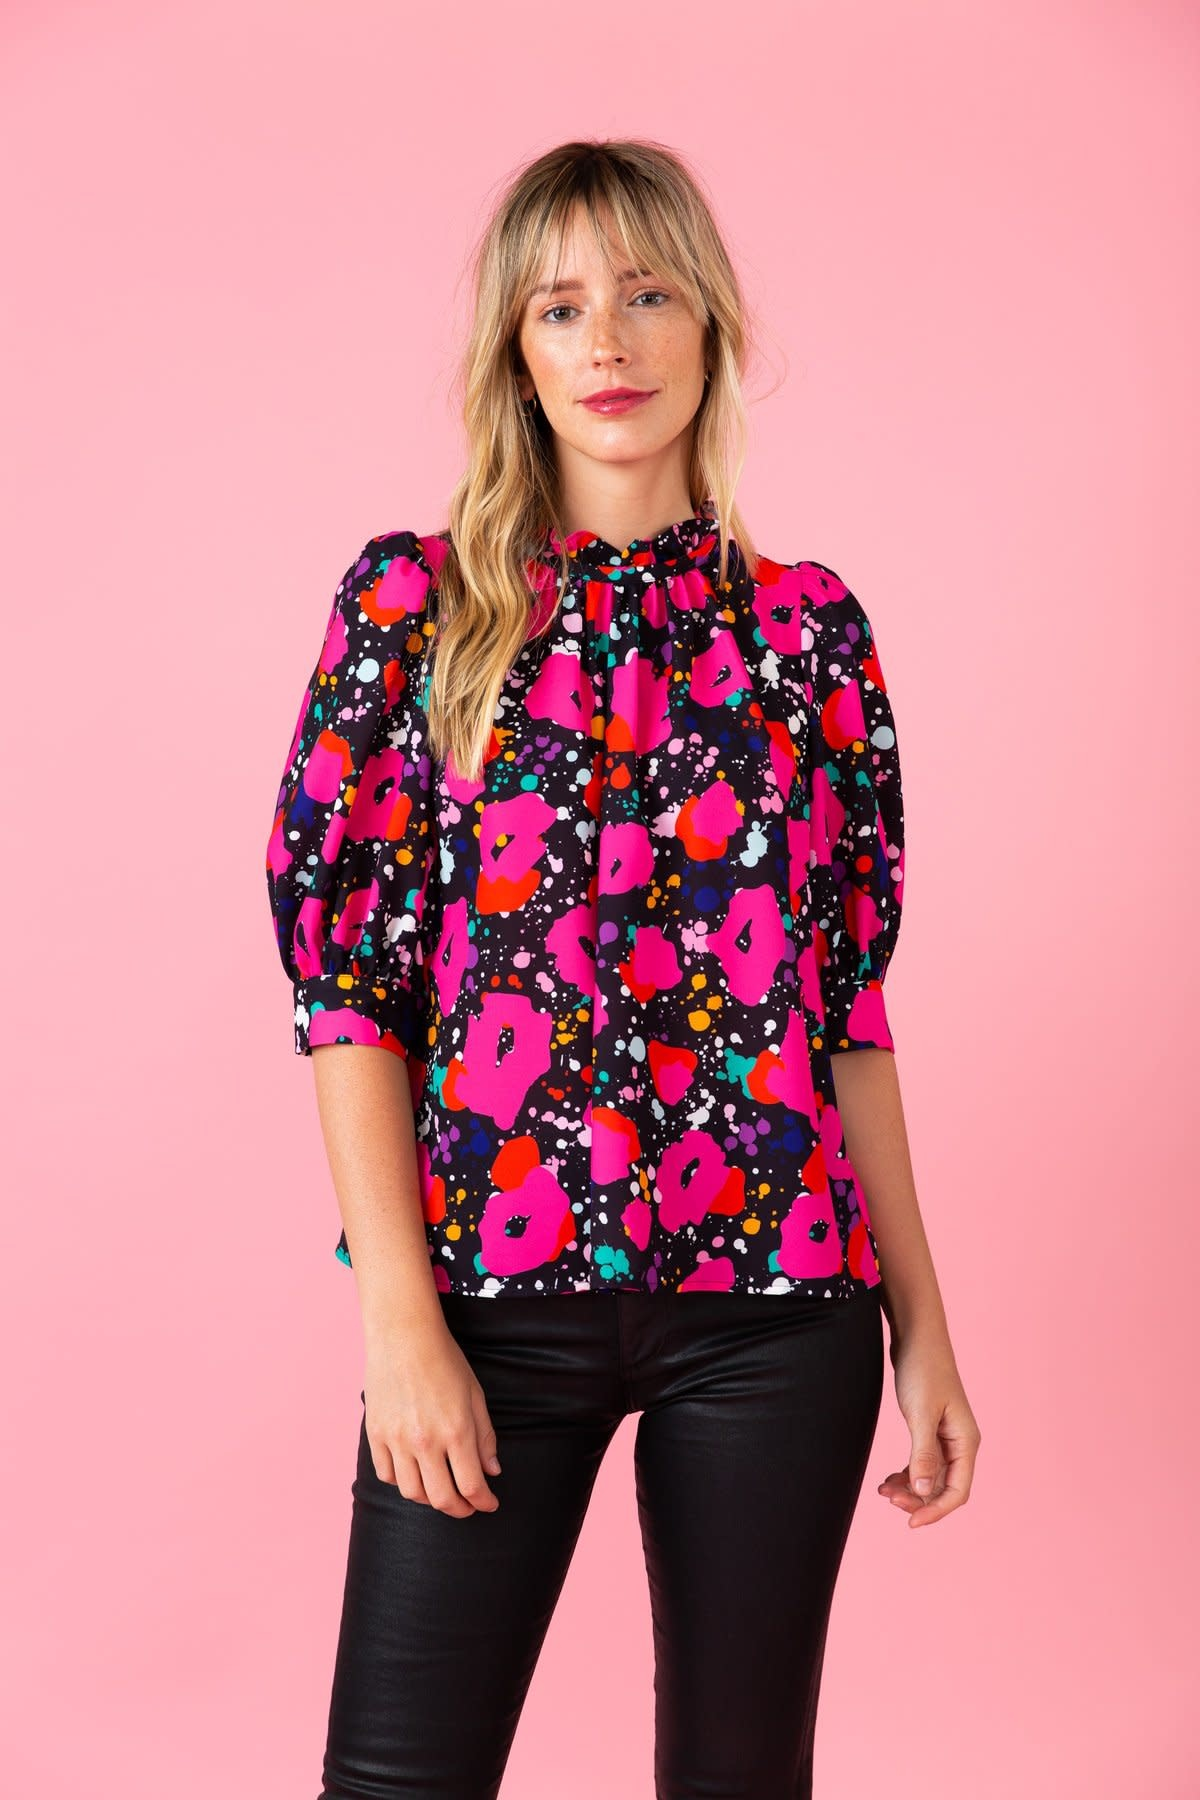 Crosby By Mollie Burch Grace Top in Candyland